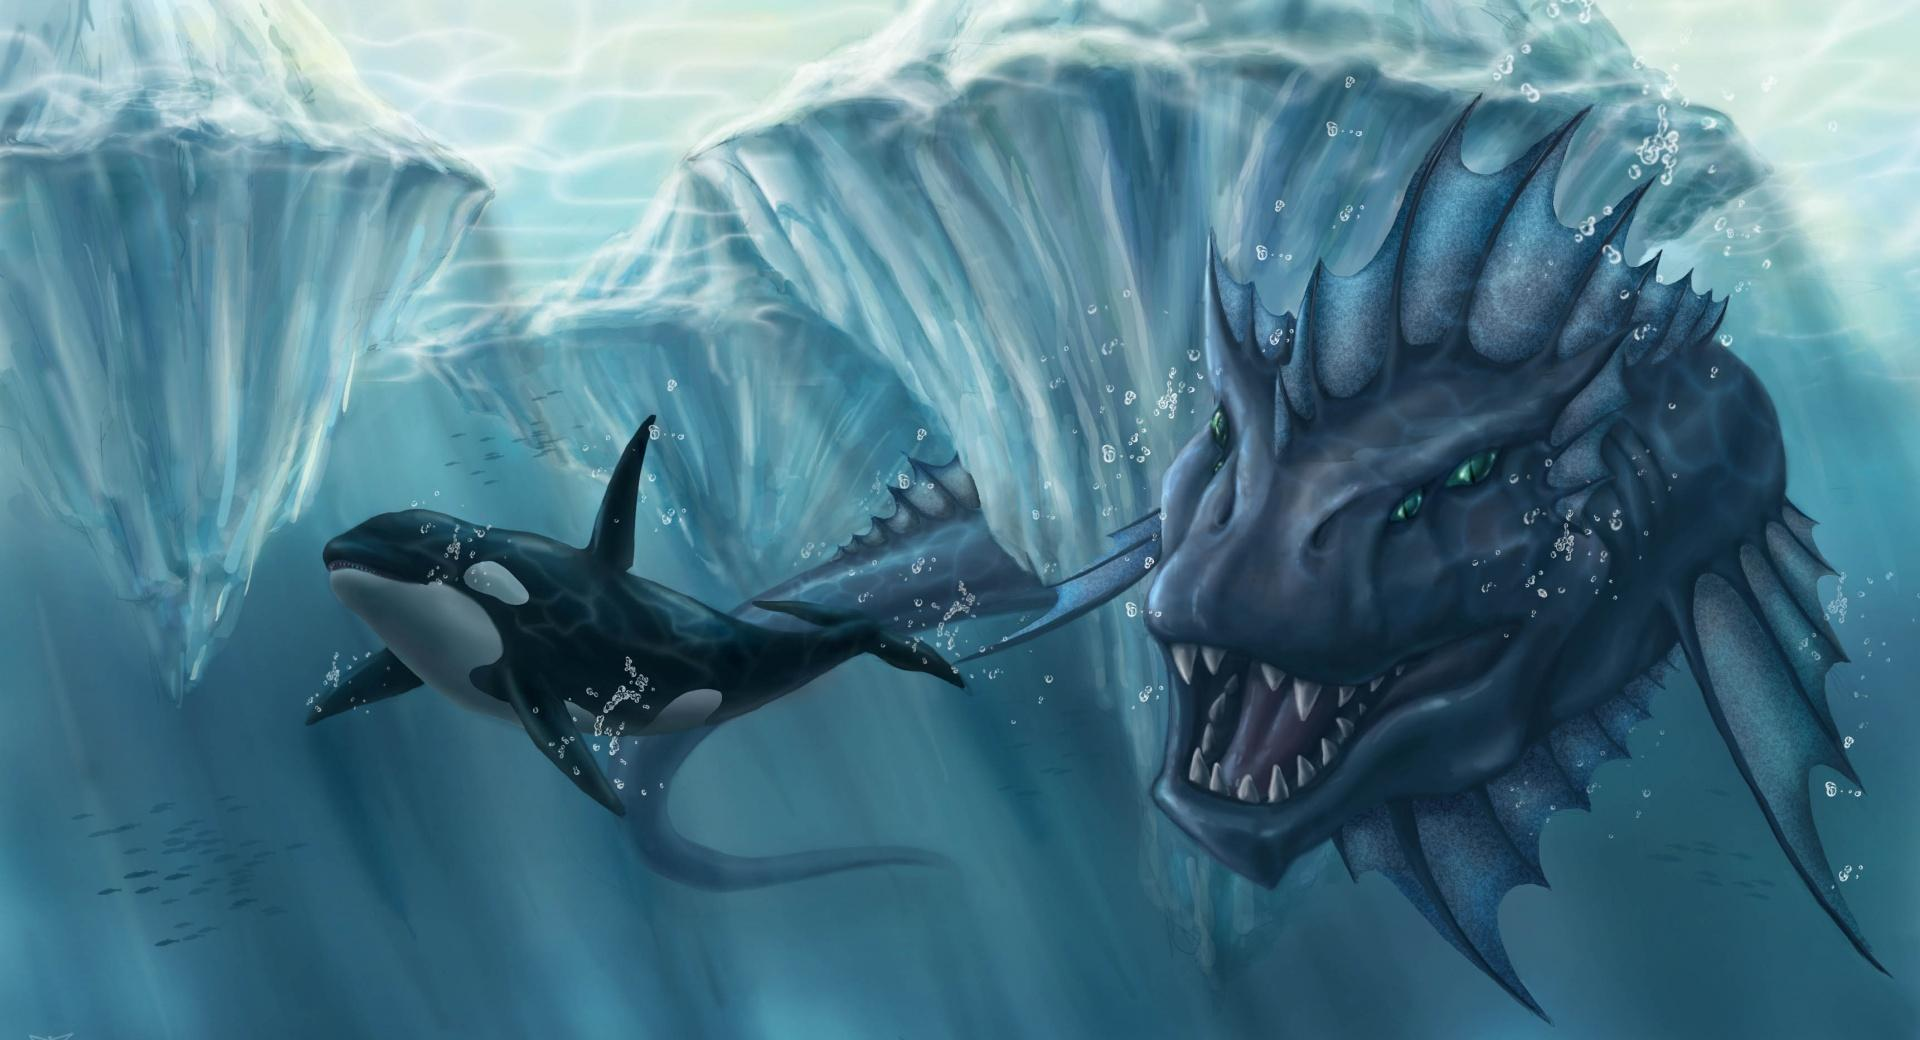 Prehistoric Underwater Monster wallpapers HD quality